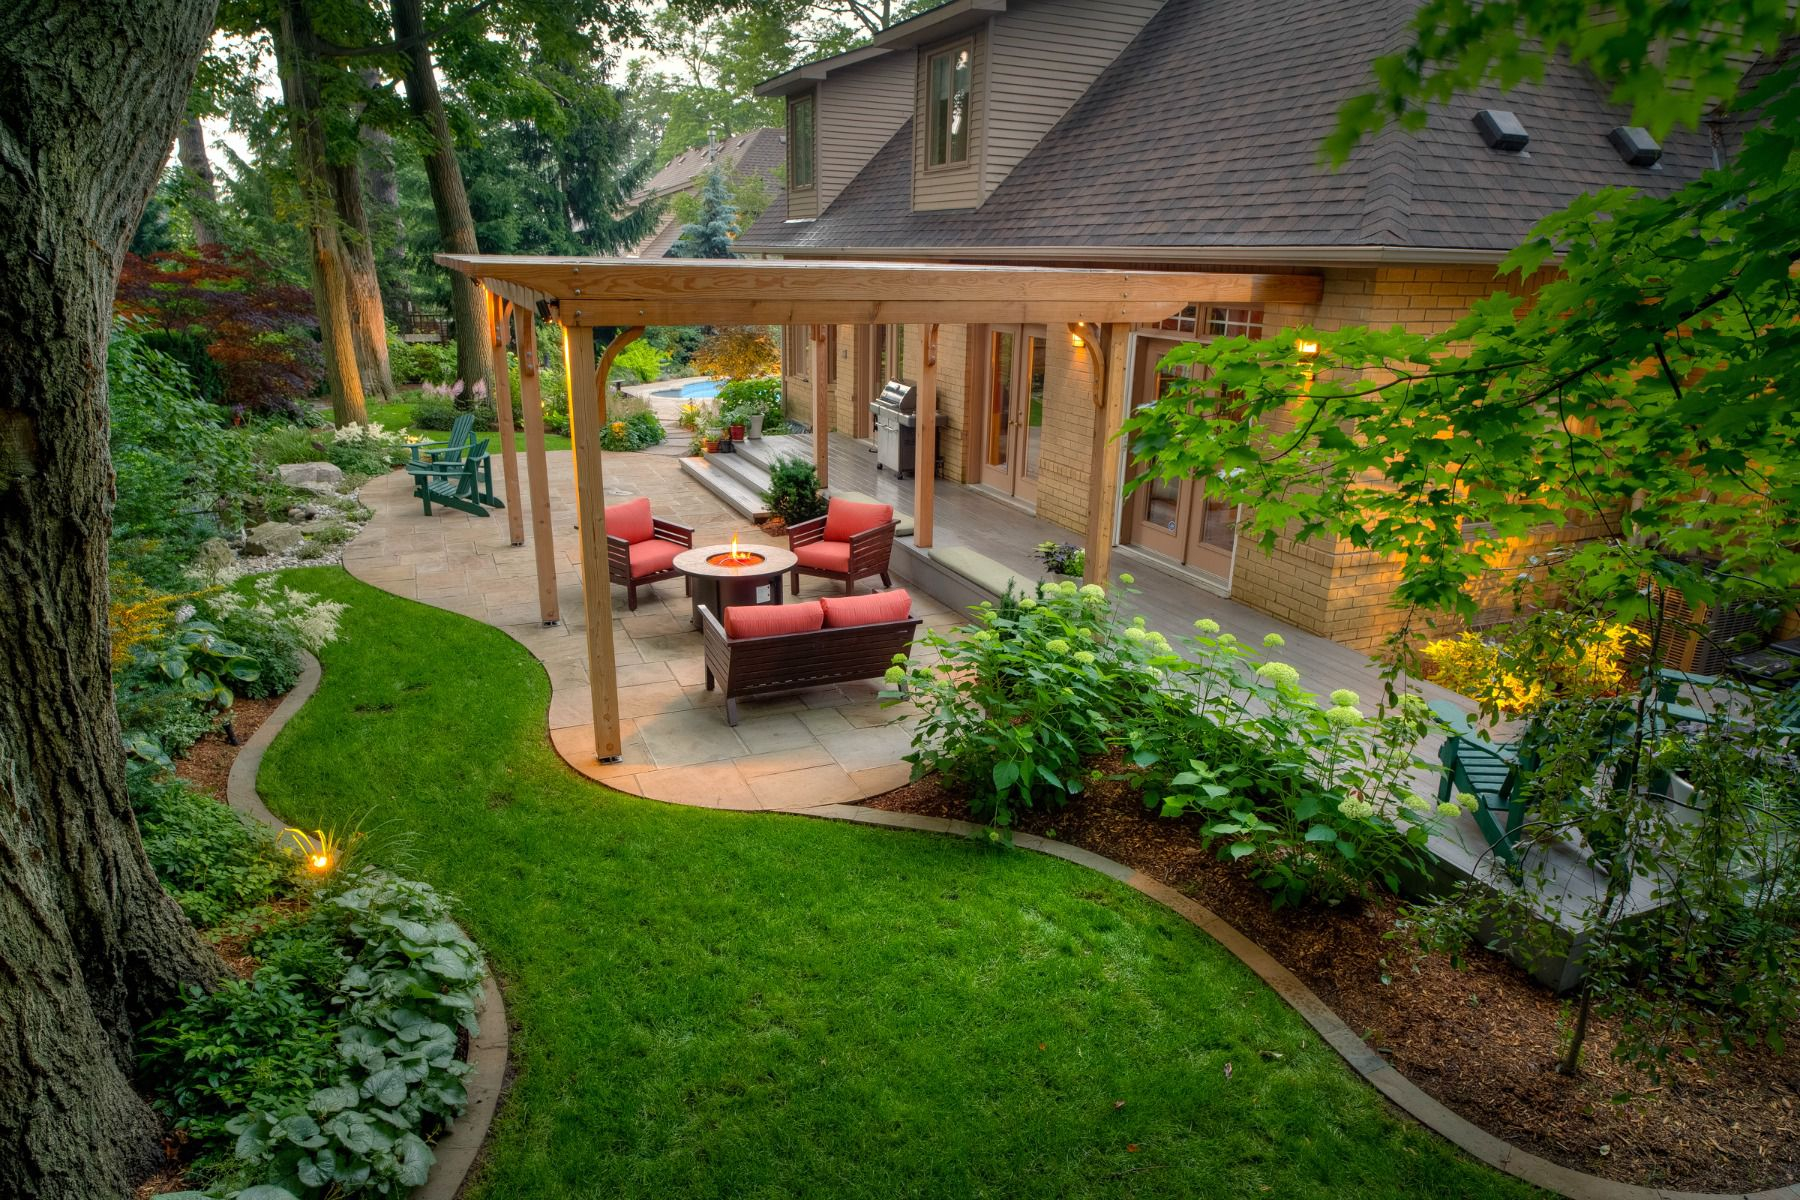 50 Backyard Landscaping Ideas To Inspire You inside Landscaping Images For Backyard